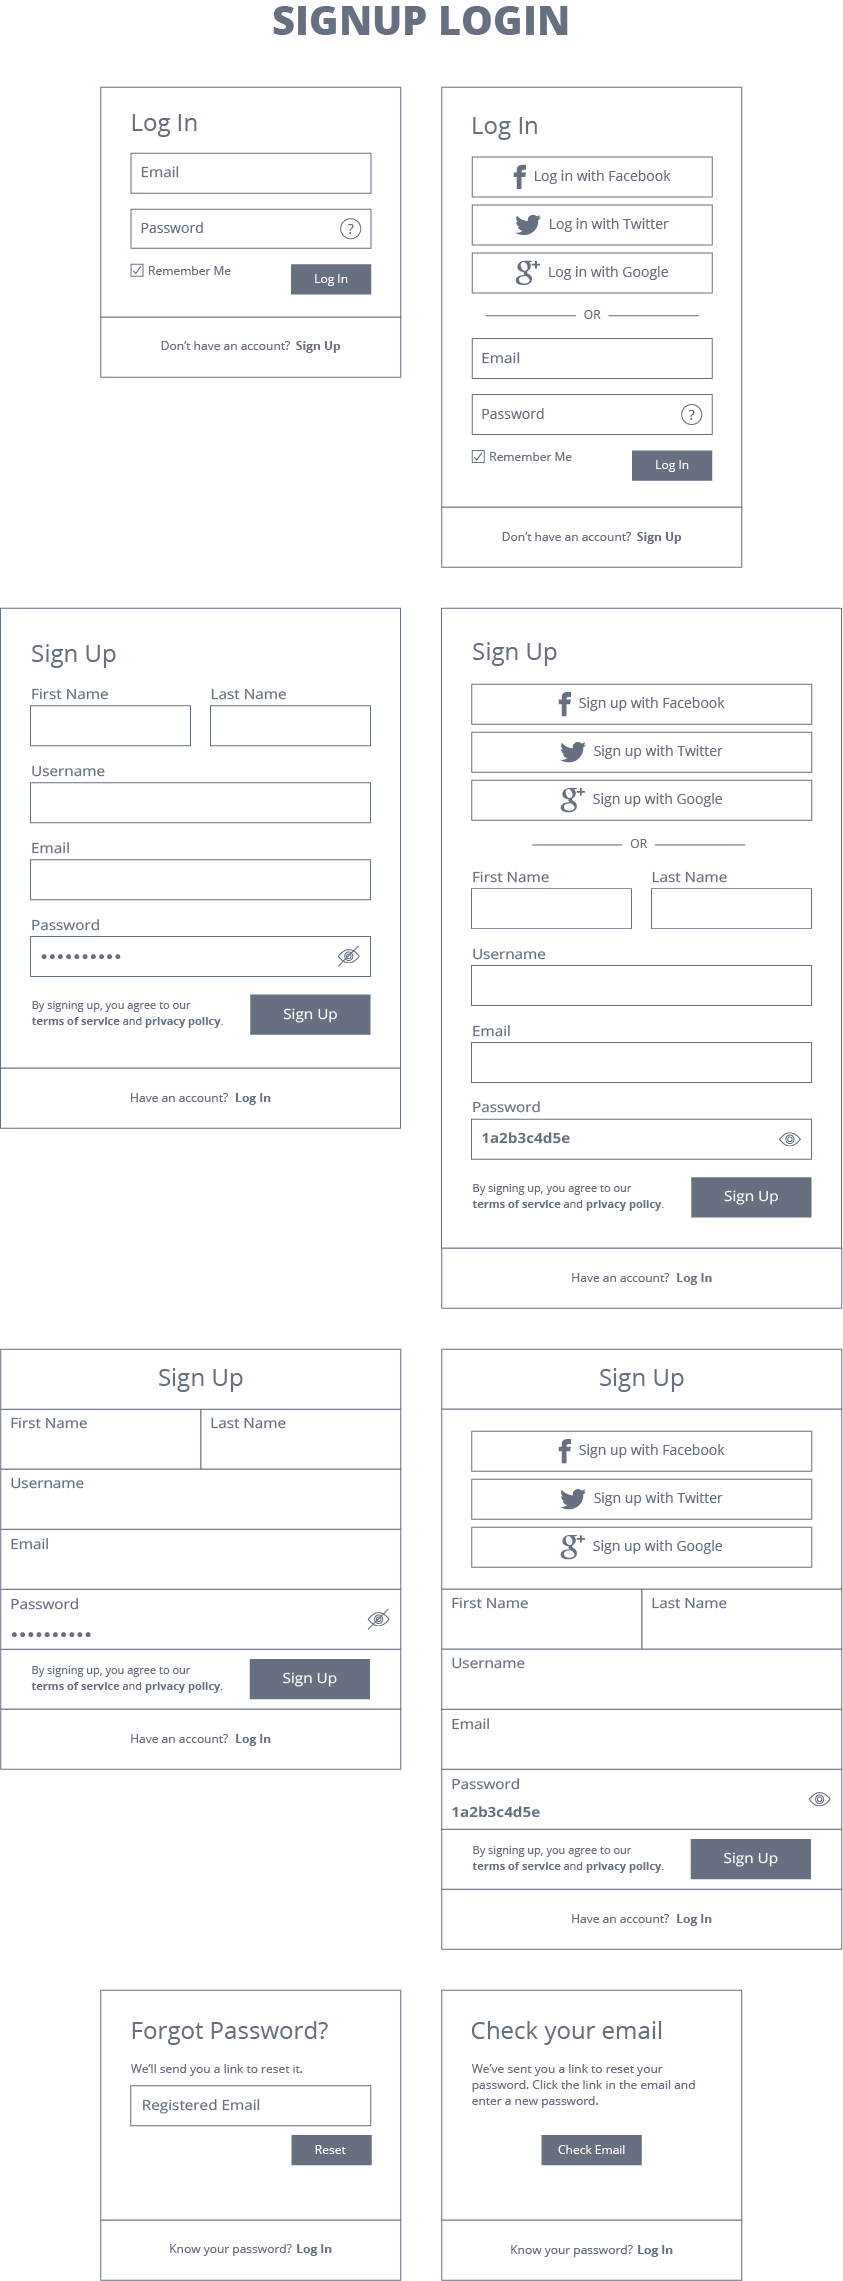 Wireframe Patterns Design At A Pro Level With Ease Wireframe Design Web Development Design Wireframe